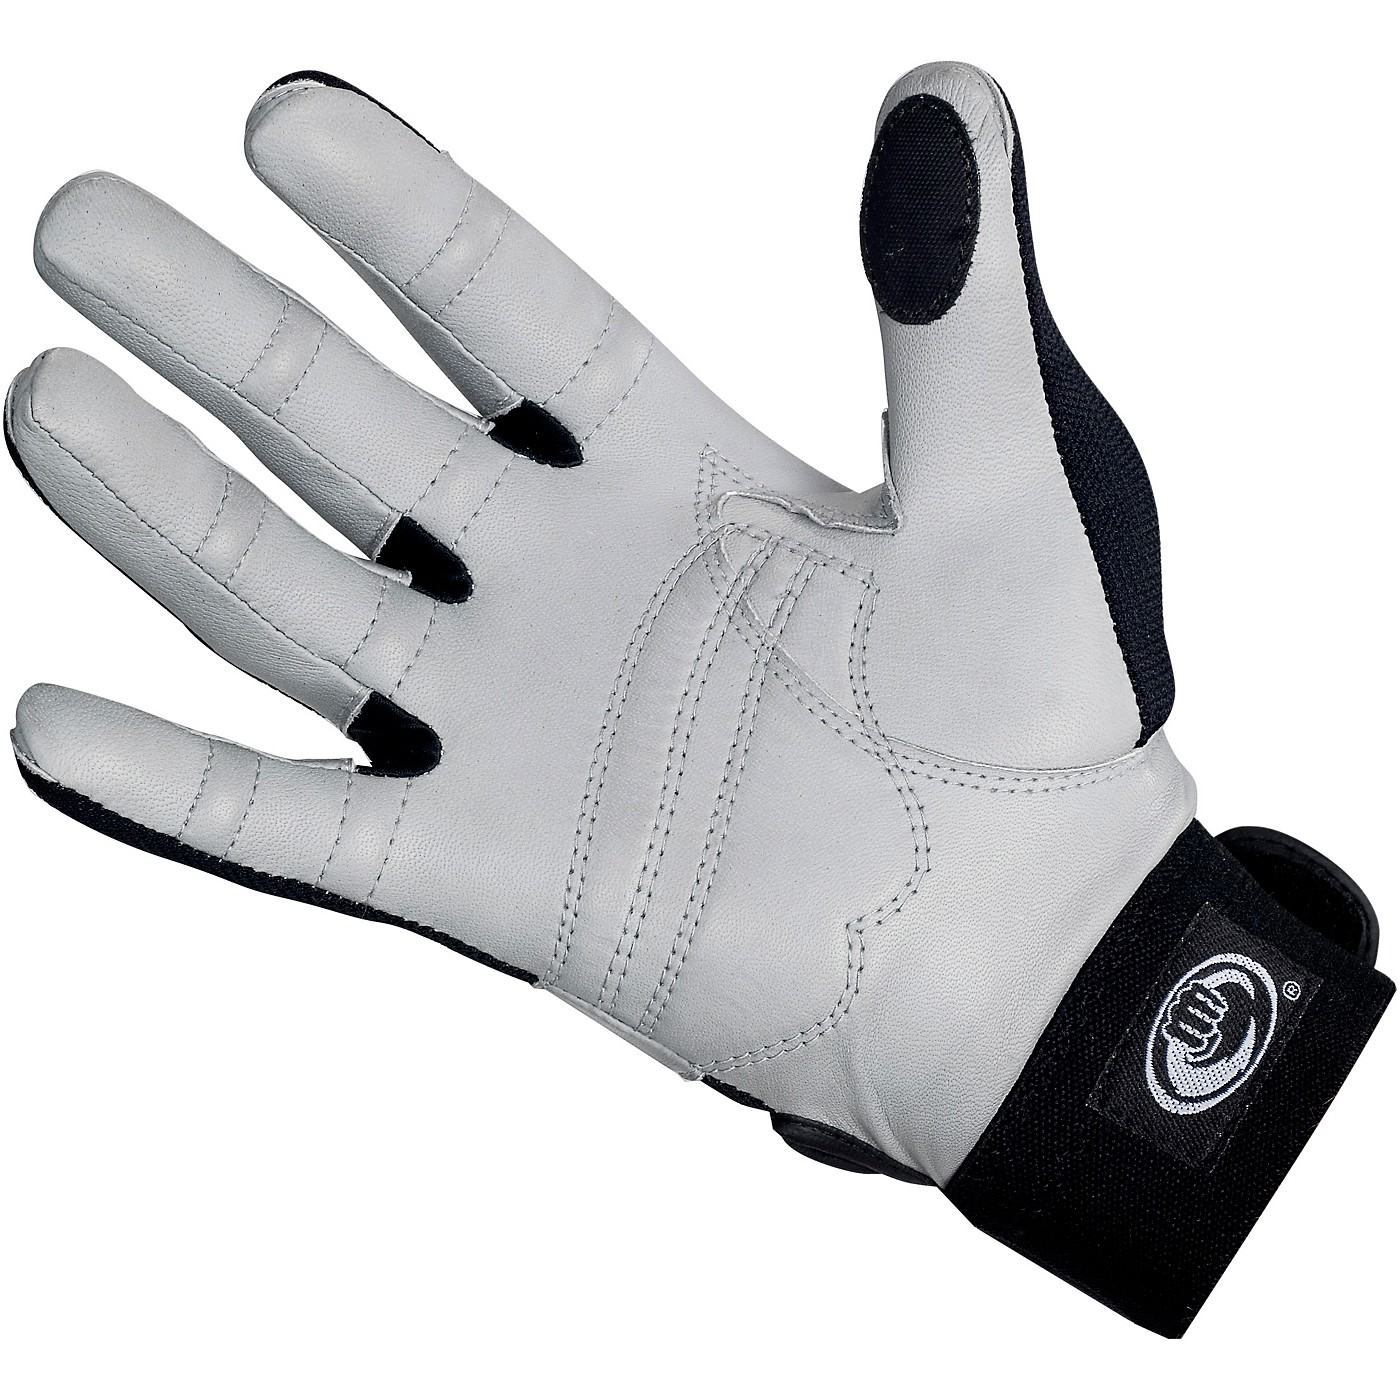 Promark Leather Drum Gloves thumbnail